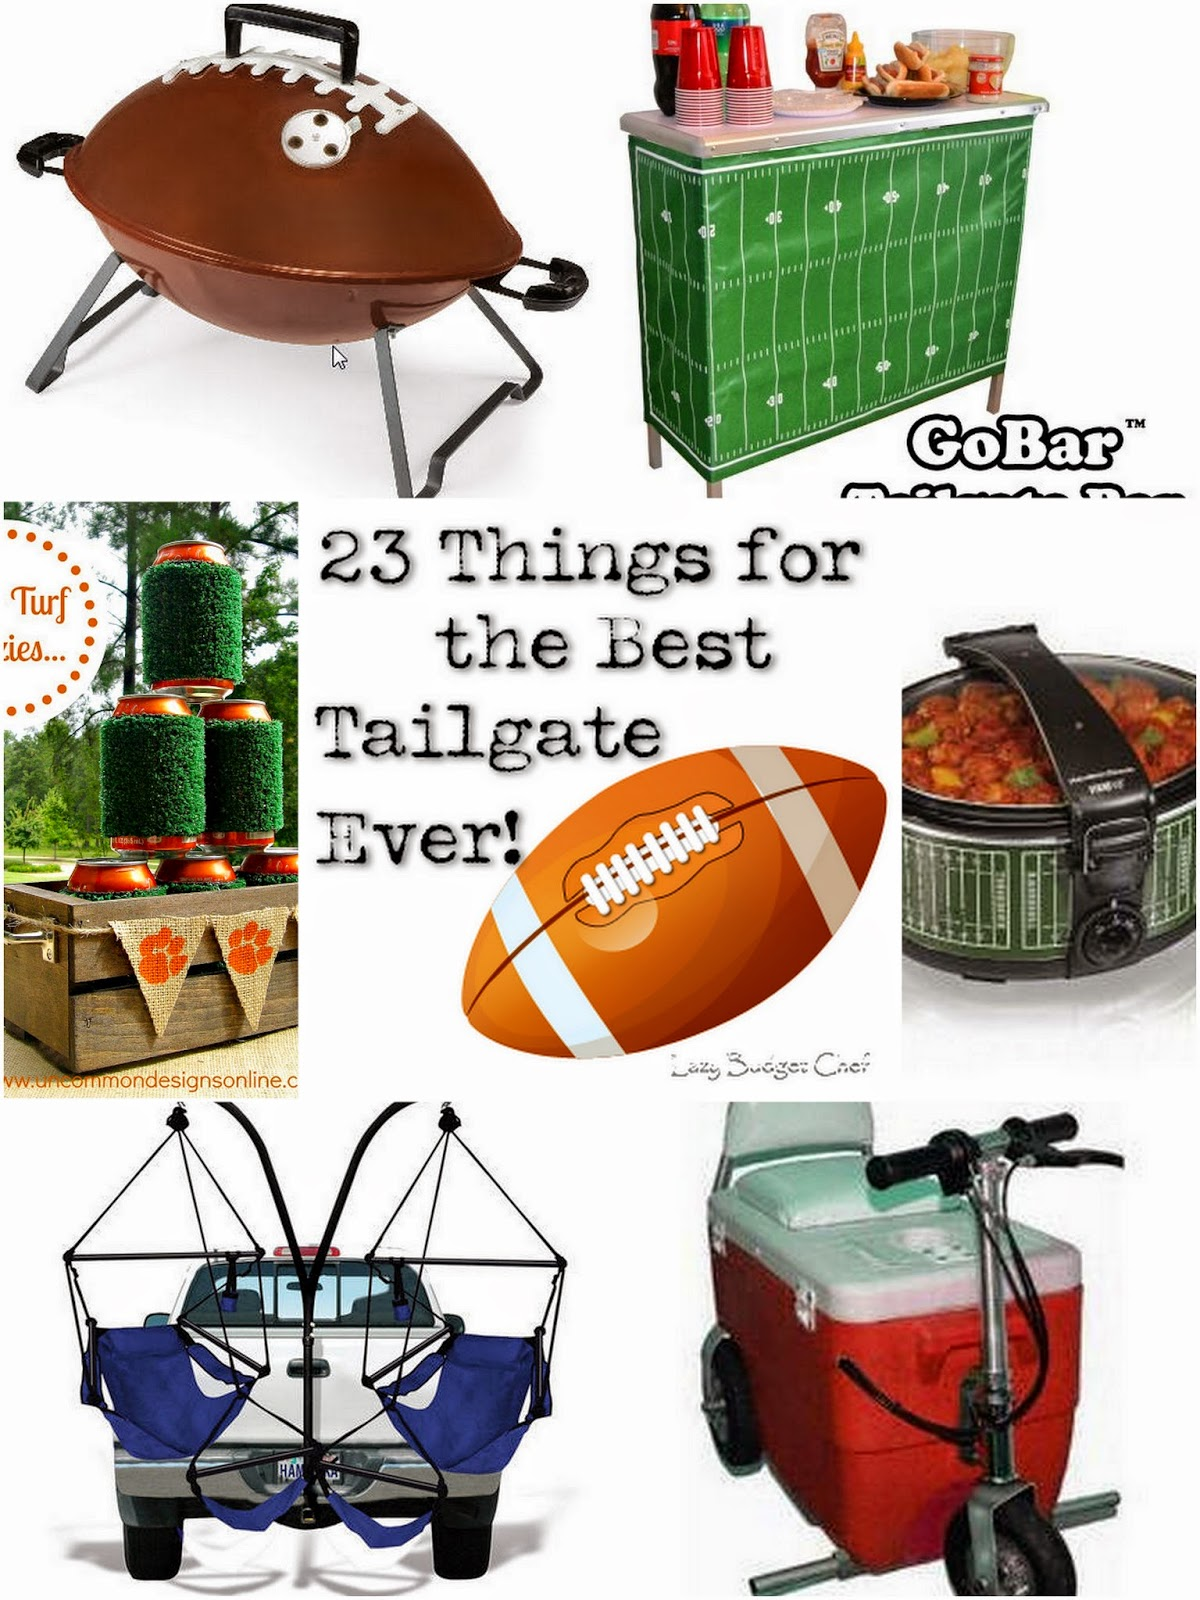 23 Best Tremere Vampire La Mascarada Images On Pinterest: Lazy Budget Chef: Top 23 Tailgating Supplies For The